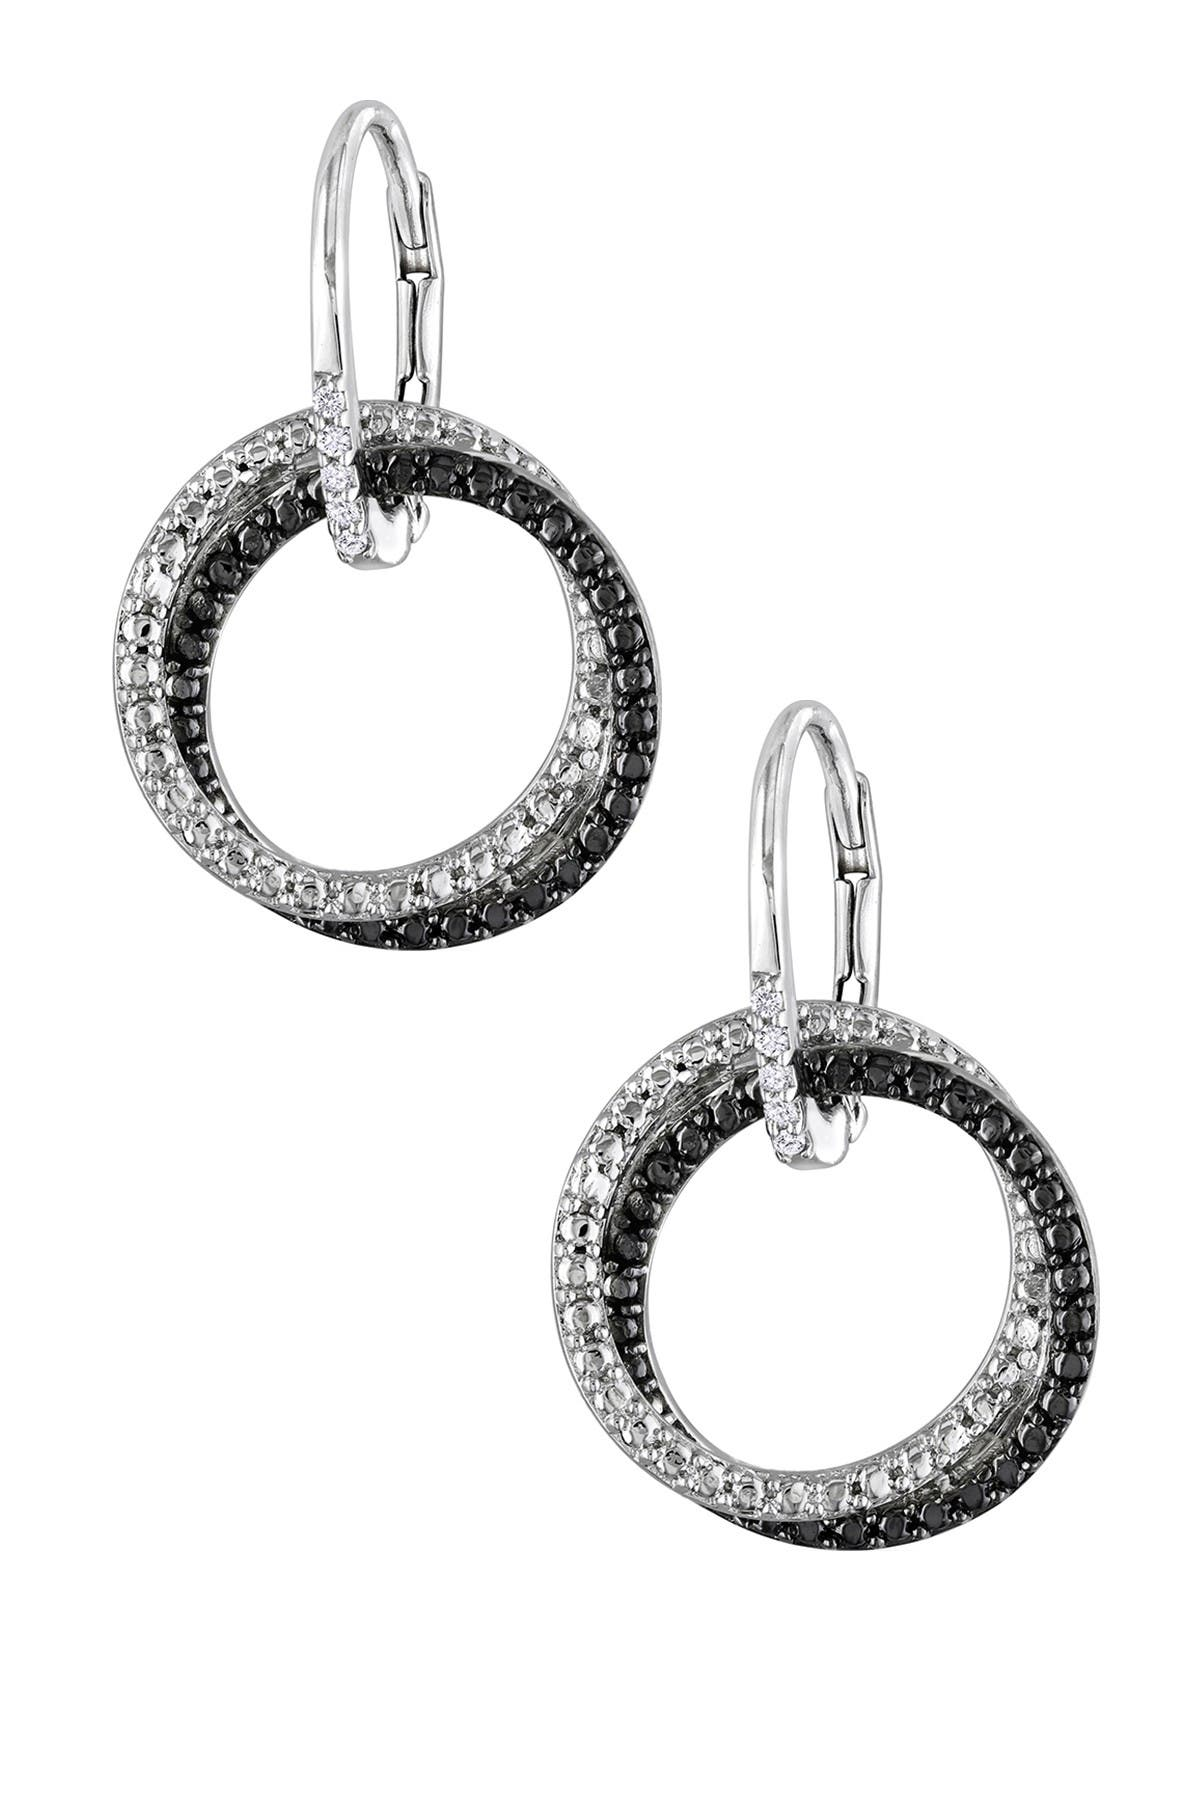 Image of Delmar Sterling Silver Two-Tone Diamond Circle Dangle Earrings - 0.05 ctw